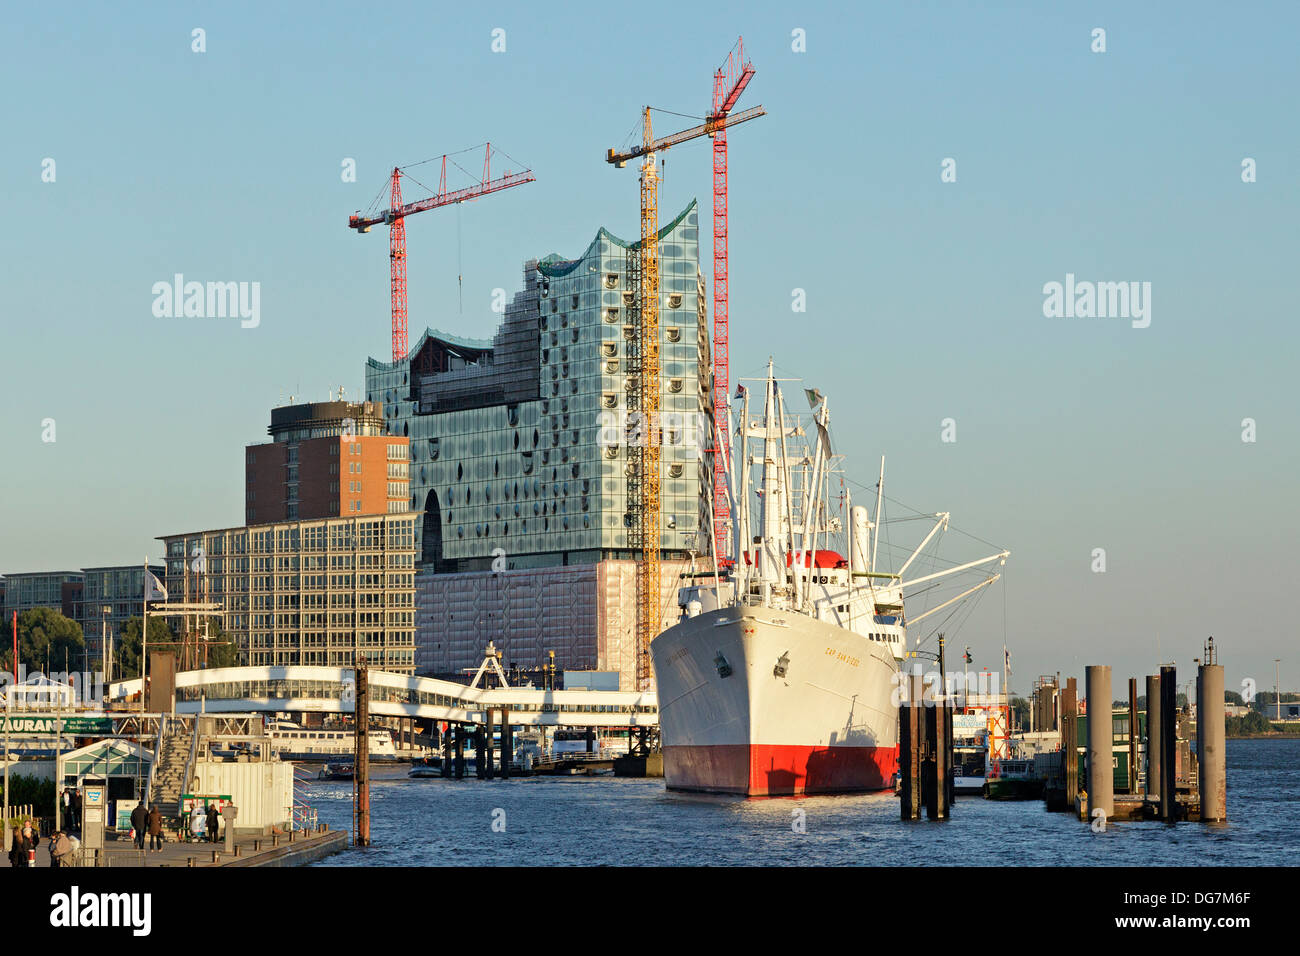 Elbe Philharmonic Hall, Hamburg Harbour, Germany - Stock Image